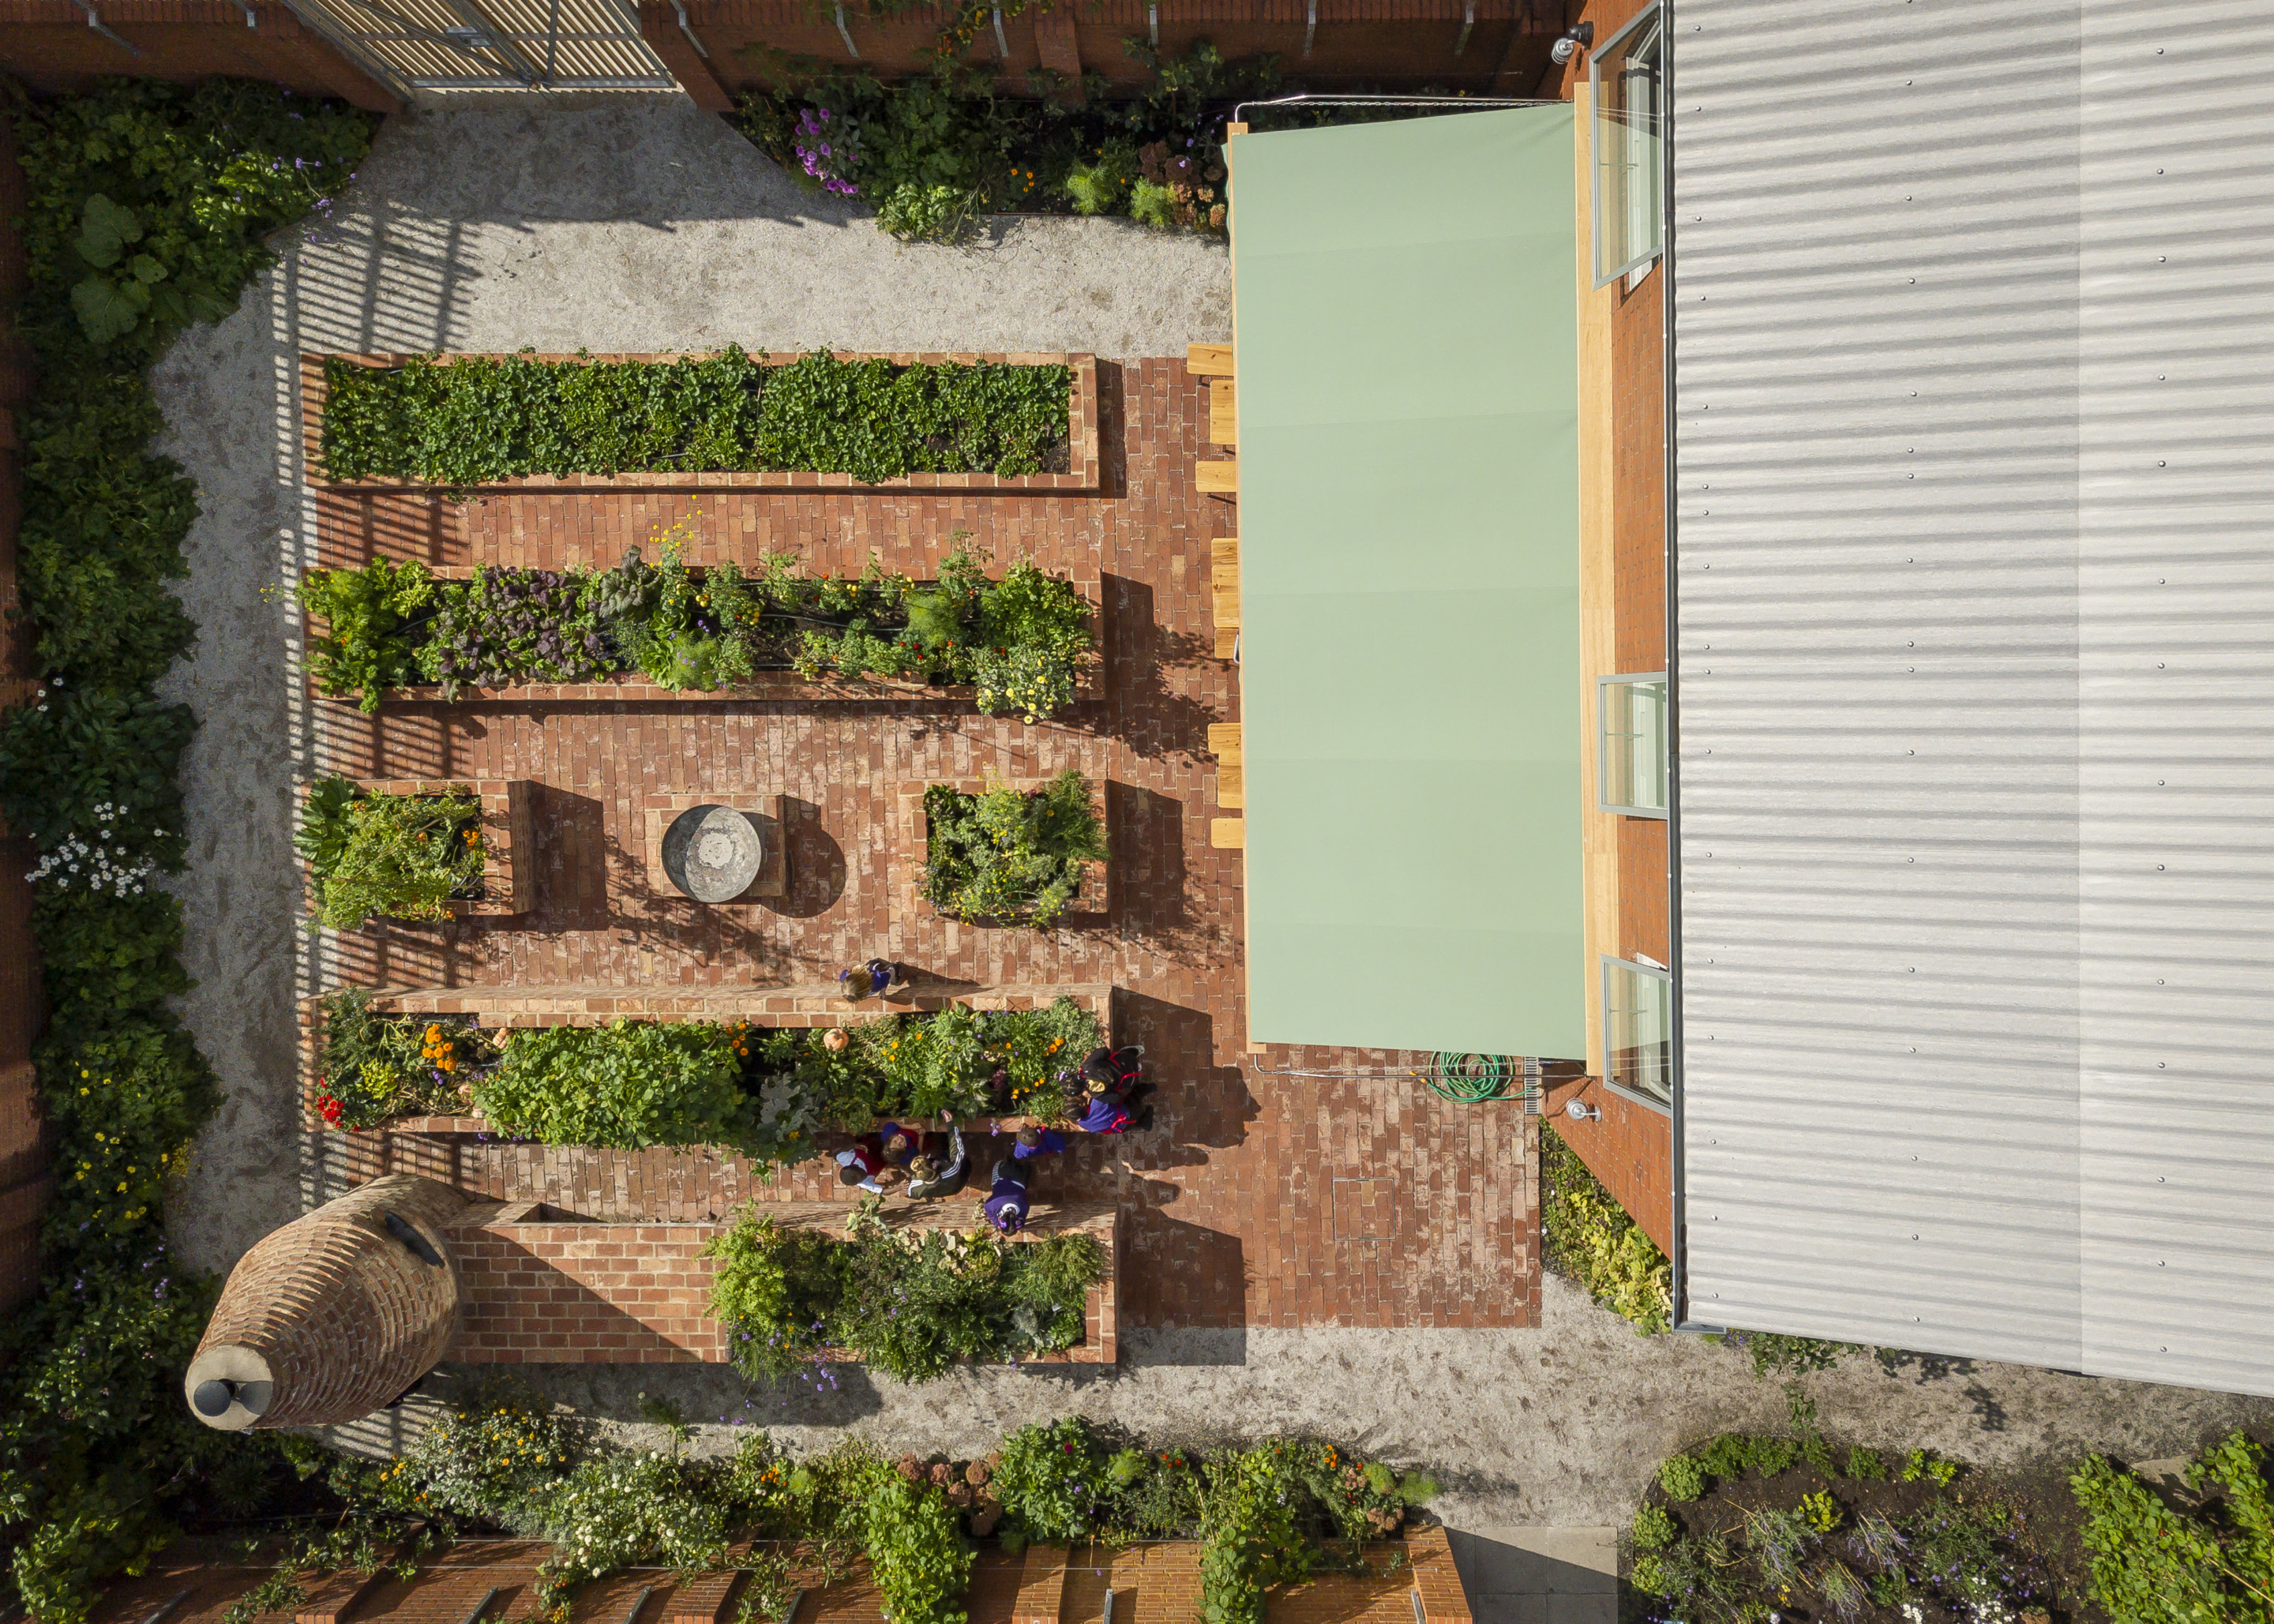 Aerial photo of a brick garden